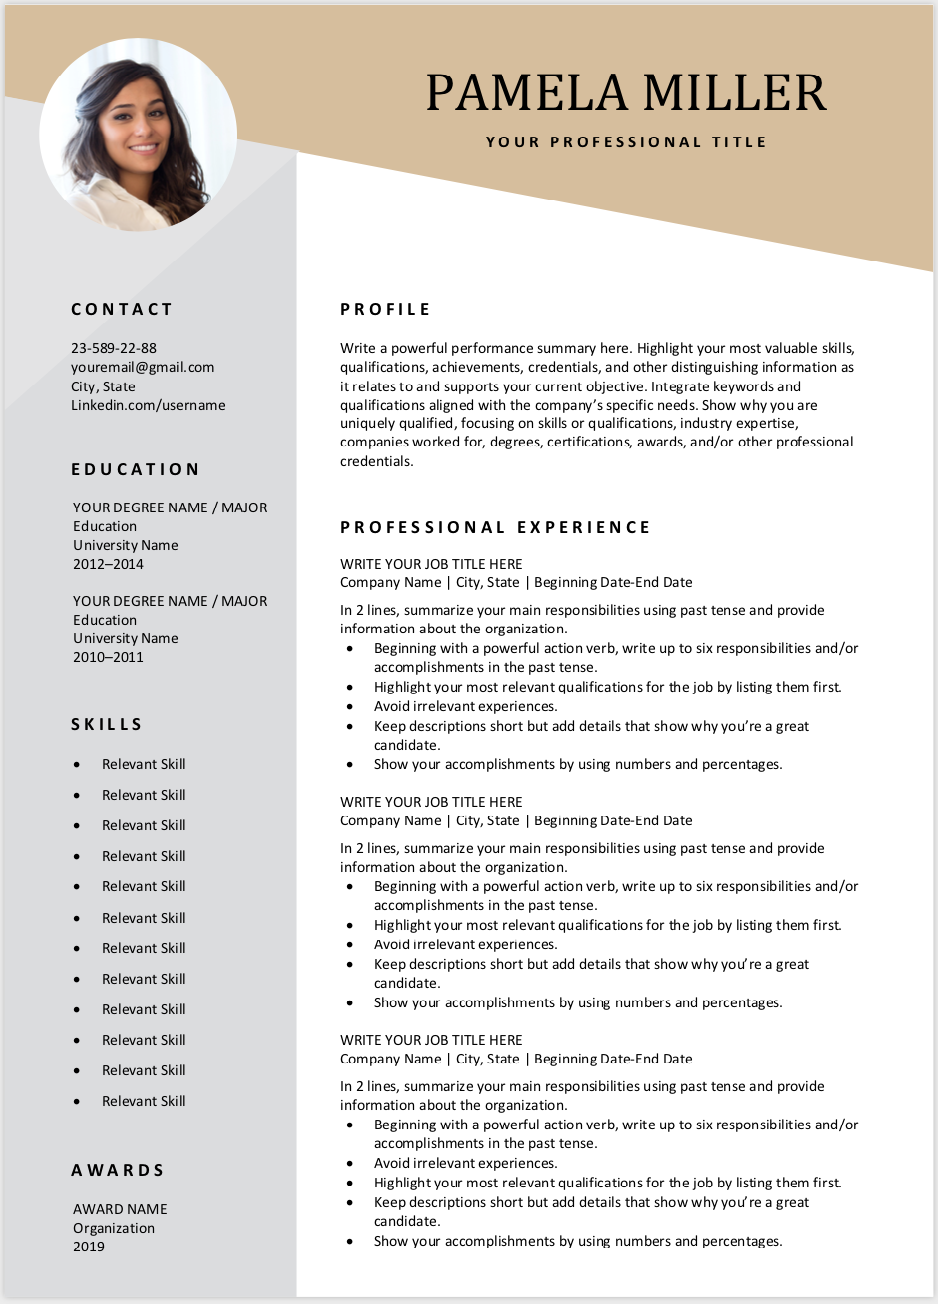 modern resume template download for free cv examples graduate students with no experience esl teacher sample google resumes